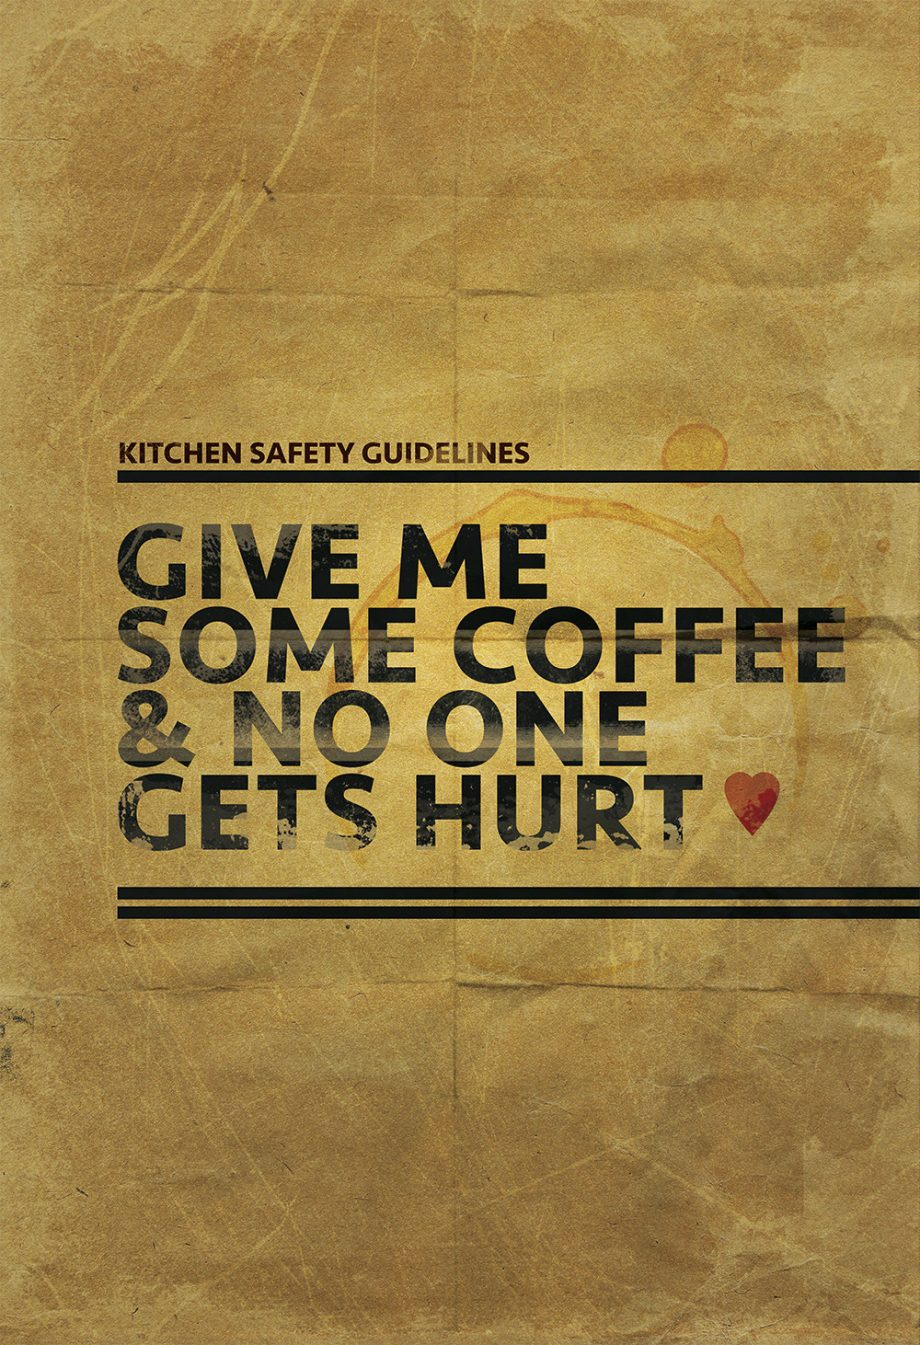 coffee-poster-kitchen-print-original-giclee-print-on-paper-canvas-funny-home-kitchen-decor-5817b6534.jpg